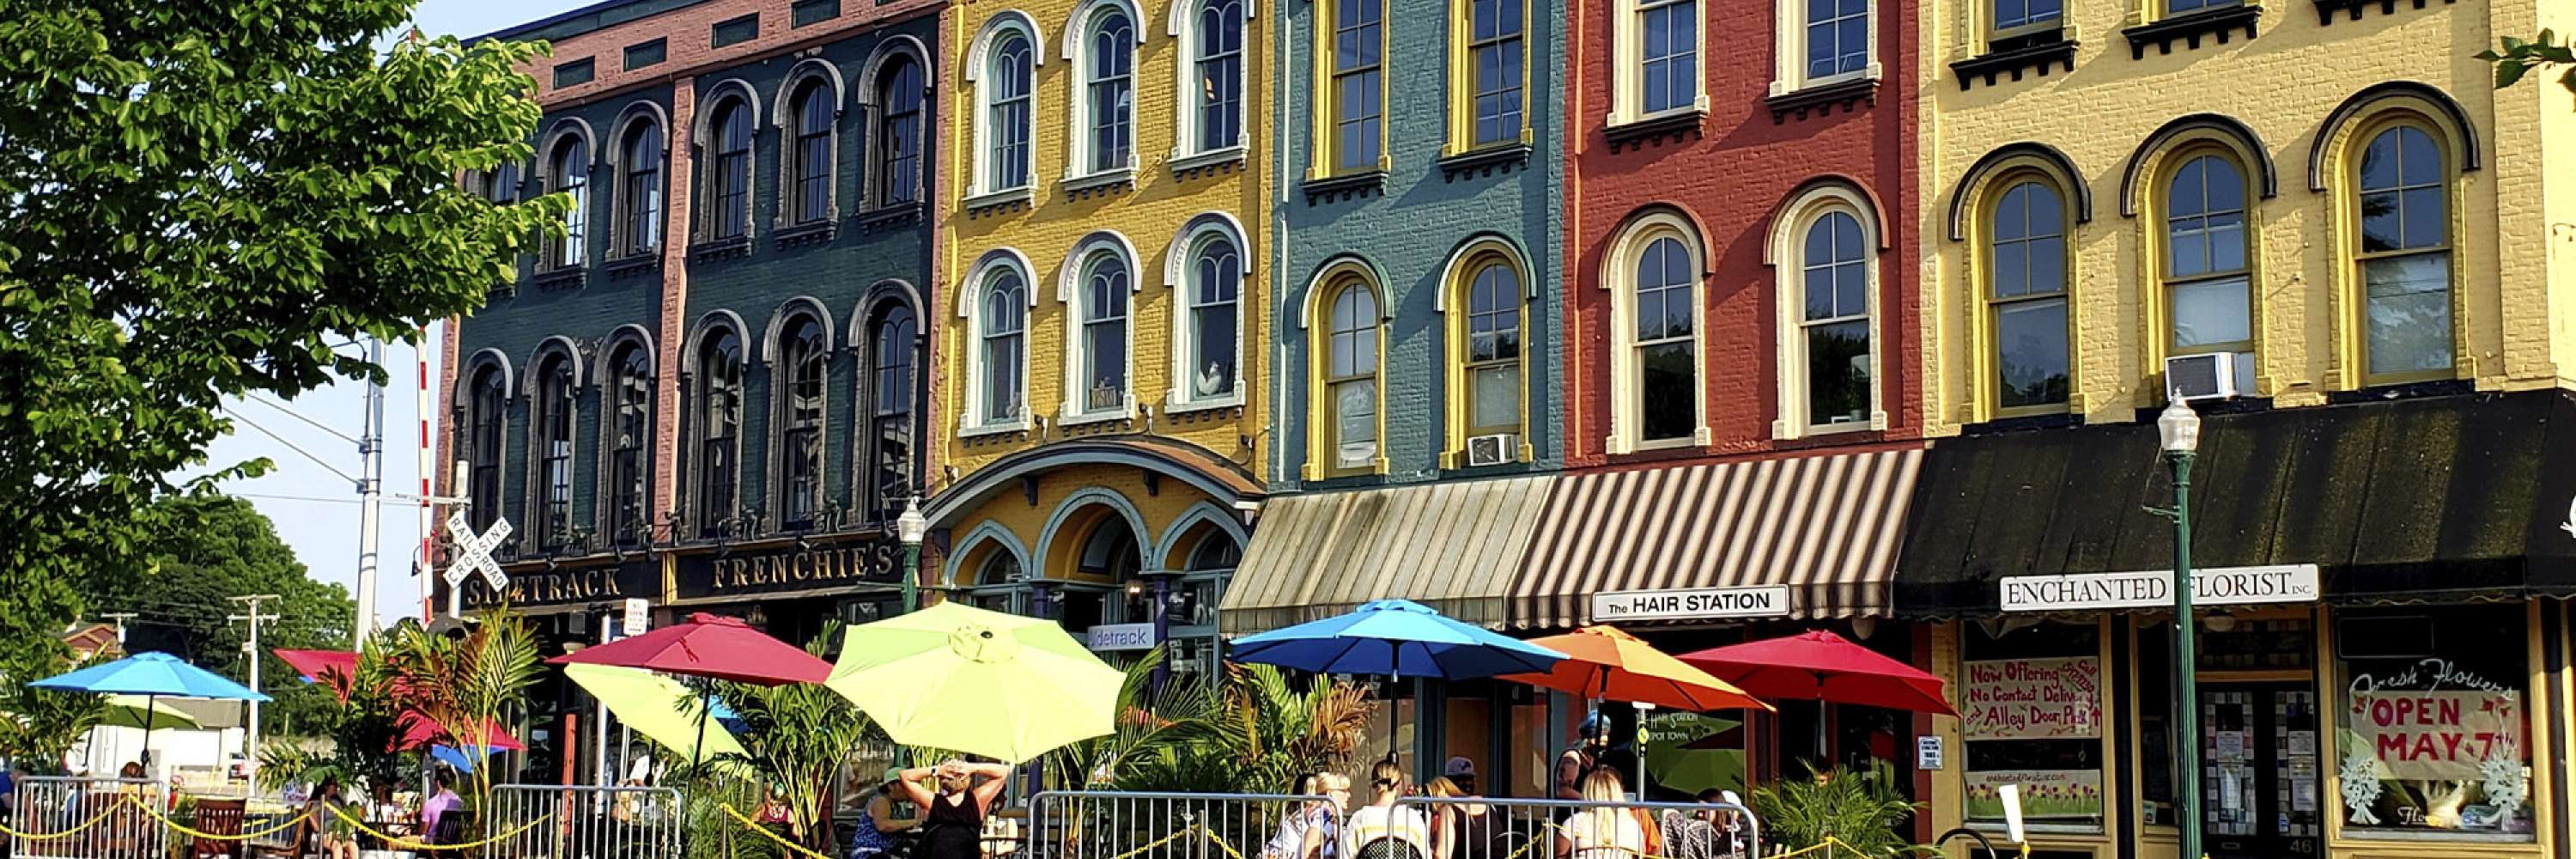 colored buildings in depot town with colored umbrellas on tables outside